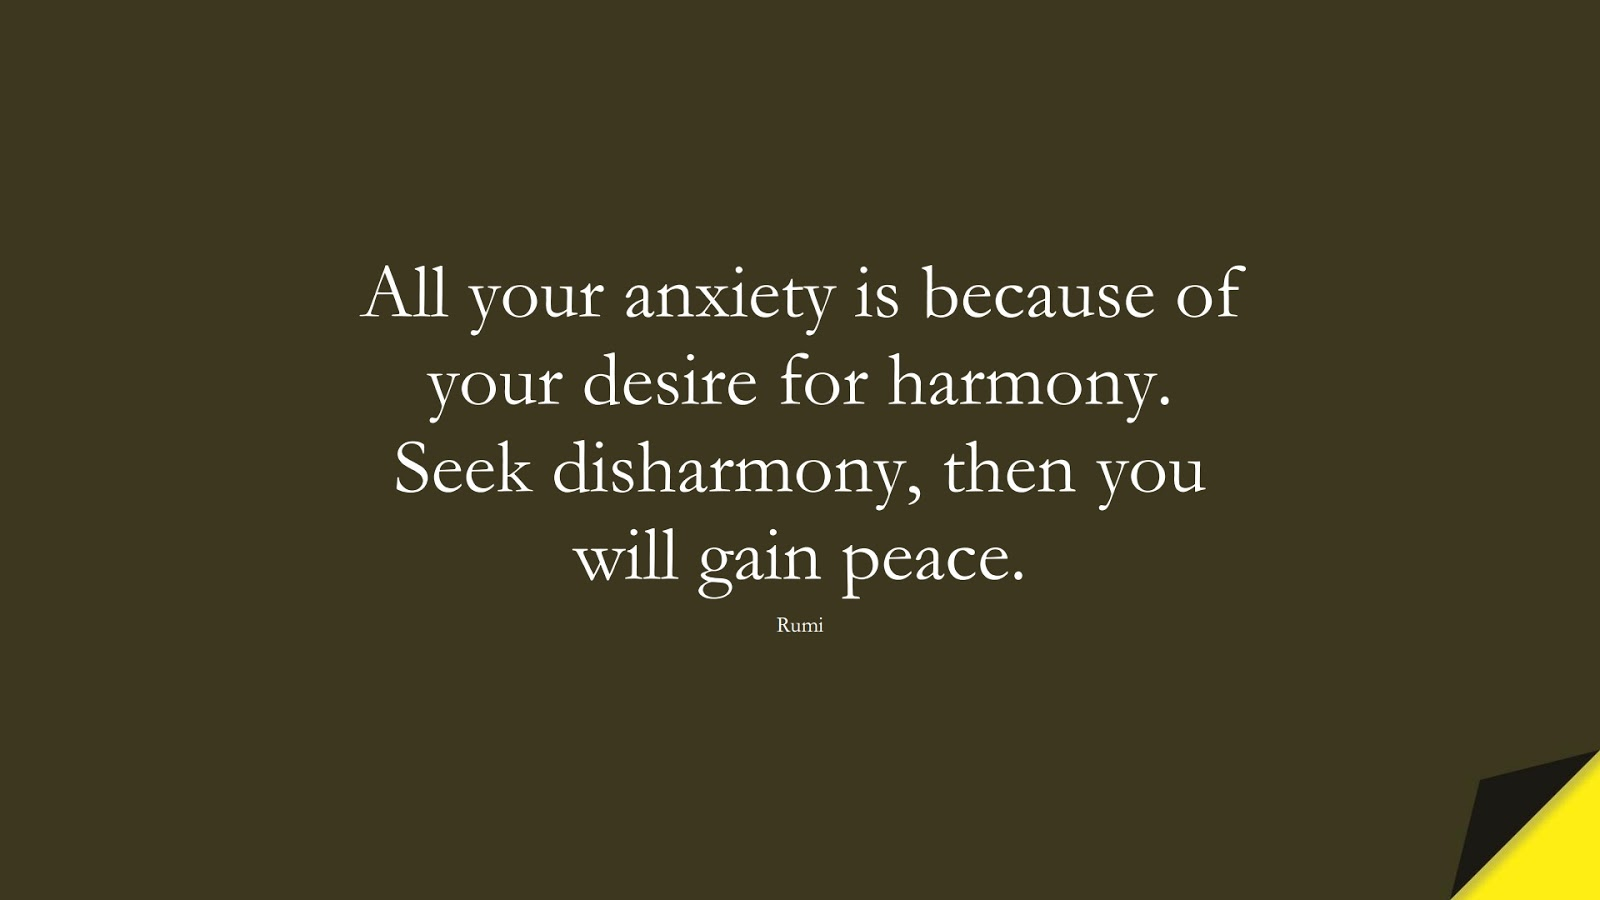 All your anxiety is because of your desire for harmony. Seek disharmony, then you will gain peace. (Rumi);  #RumiQuotes